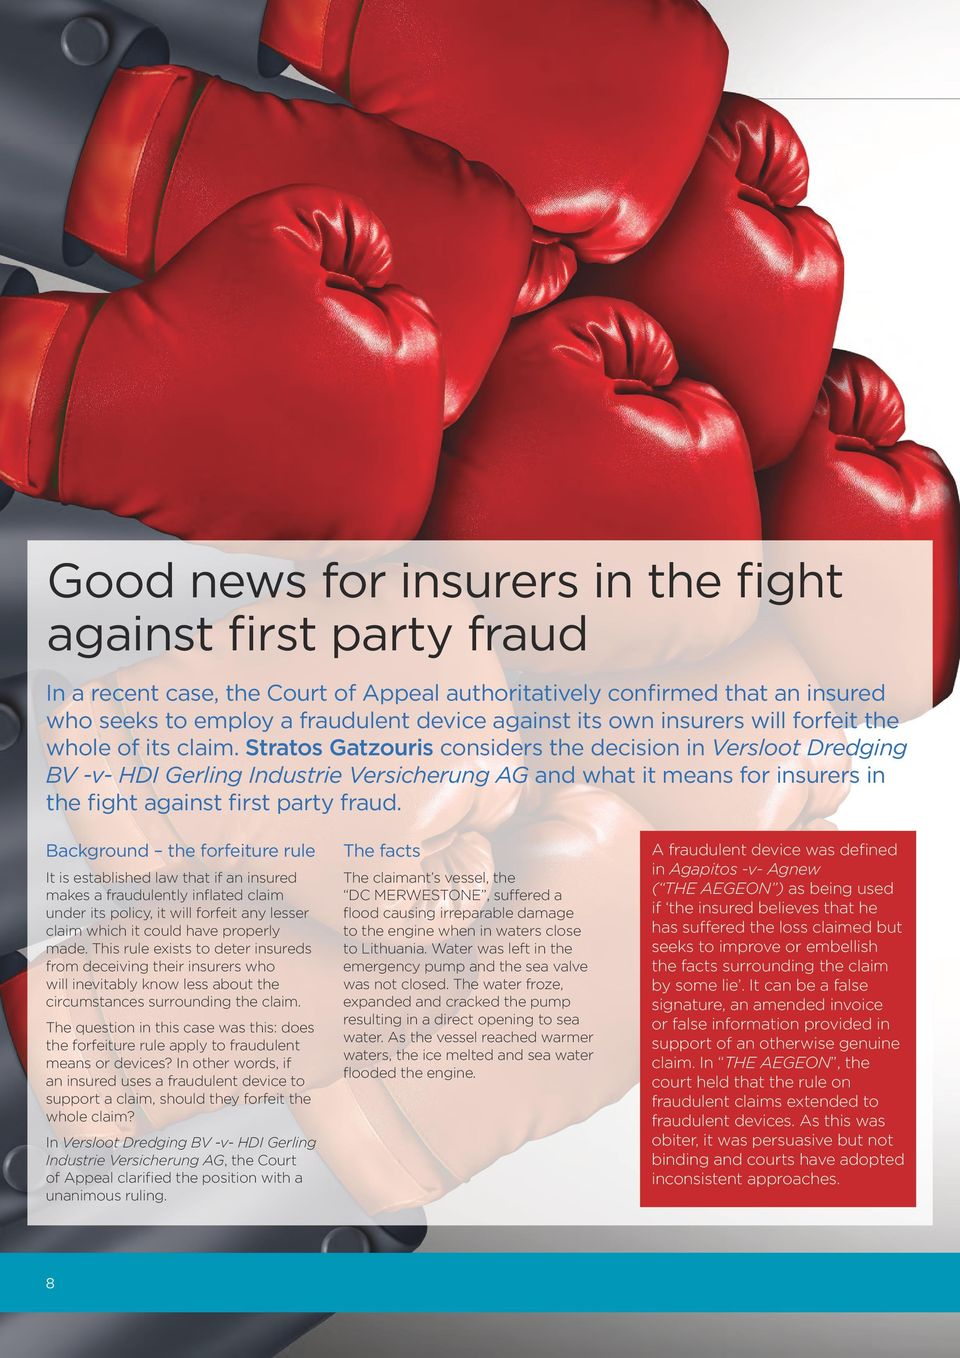 Stratos Gatzouris considers the decision in Versloot Dredging BV -v- HDI Gerling Industrie Versicherung G and what it means for insurers in the fight against first party fraud.